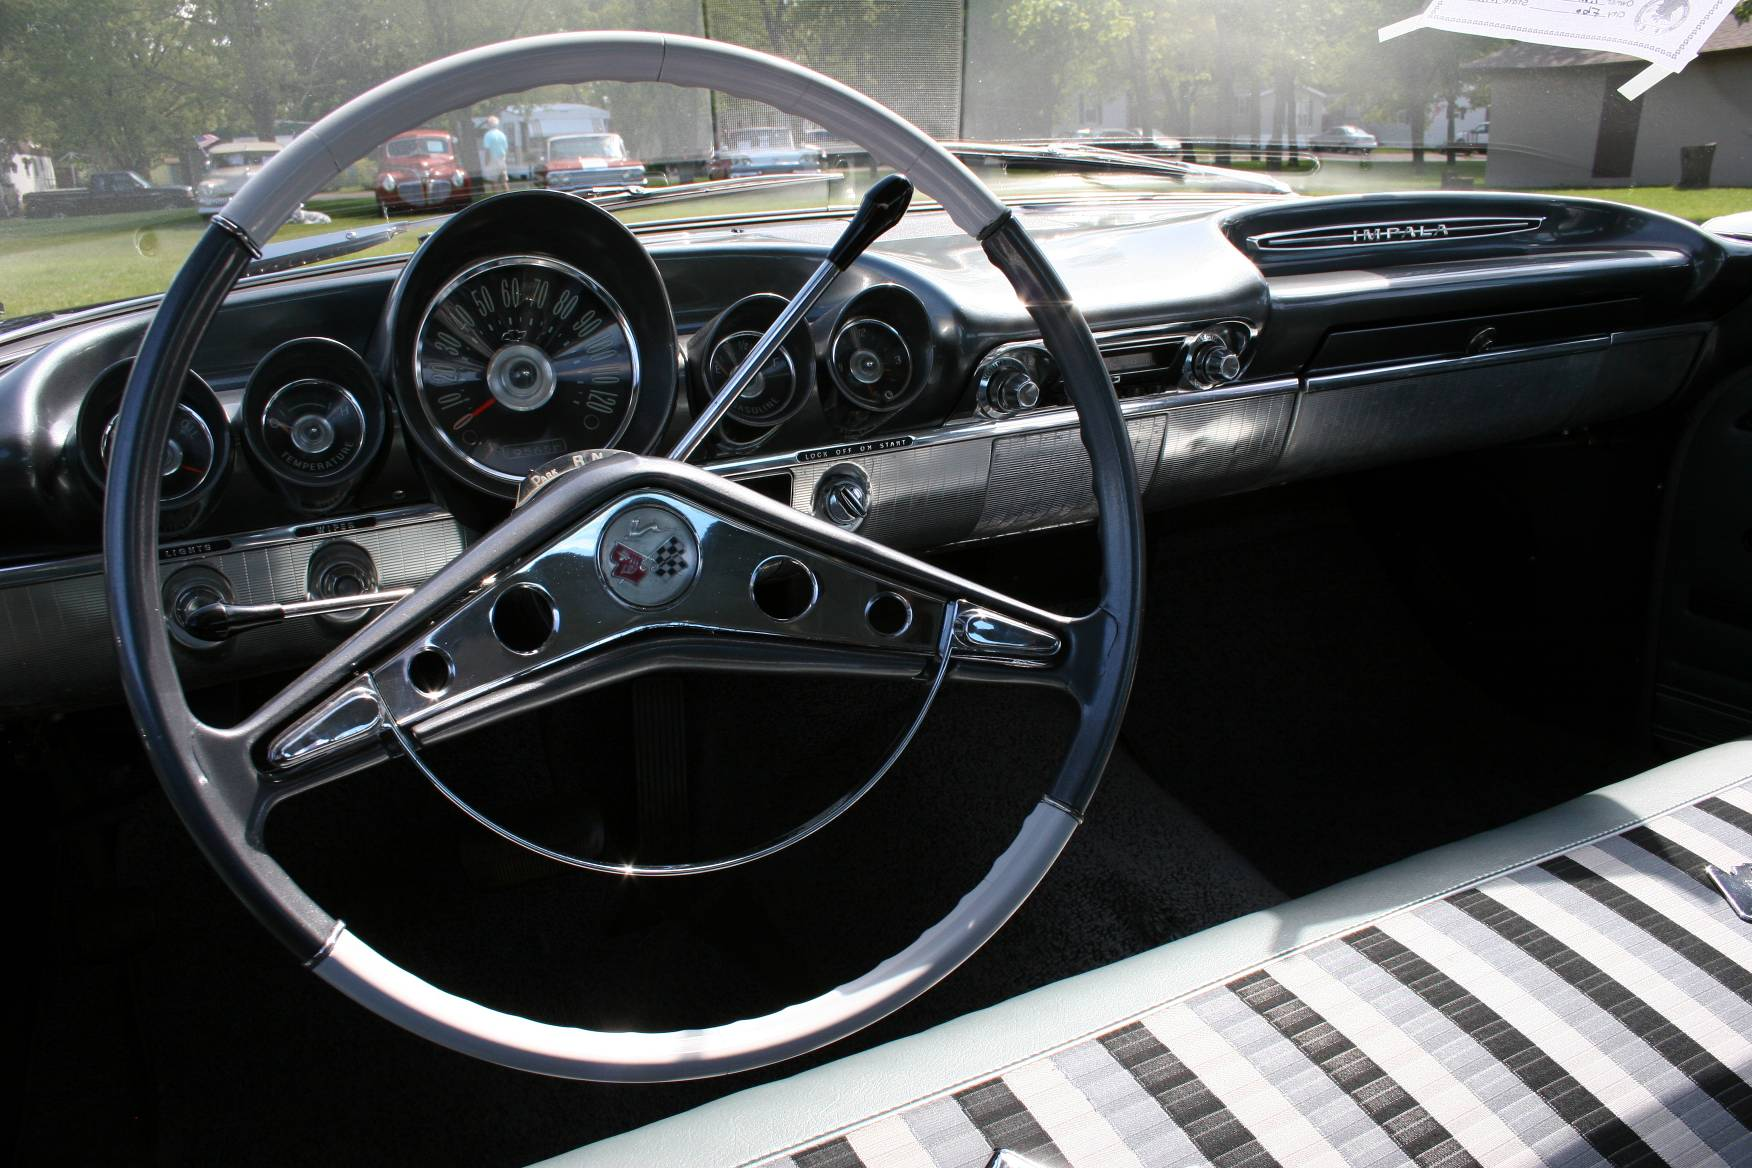 1959 Chevrolet Impala review